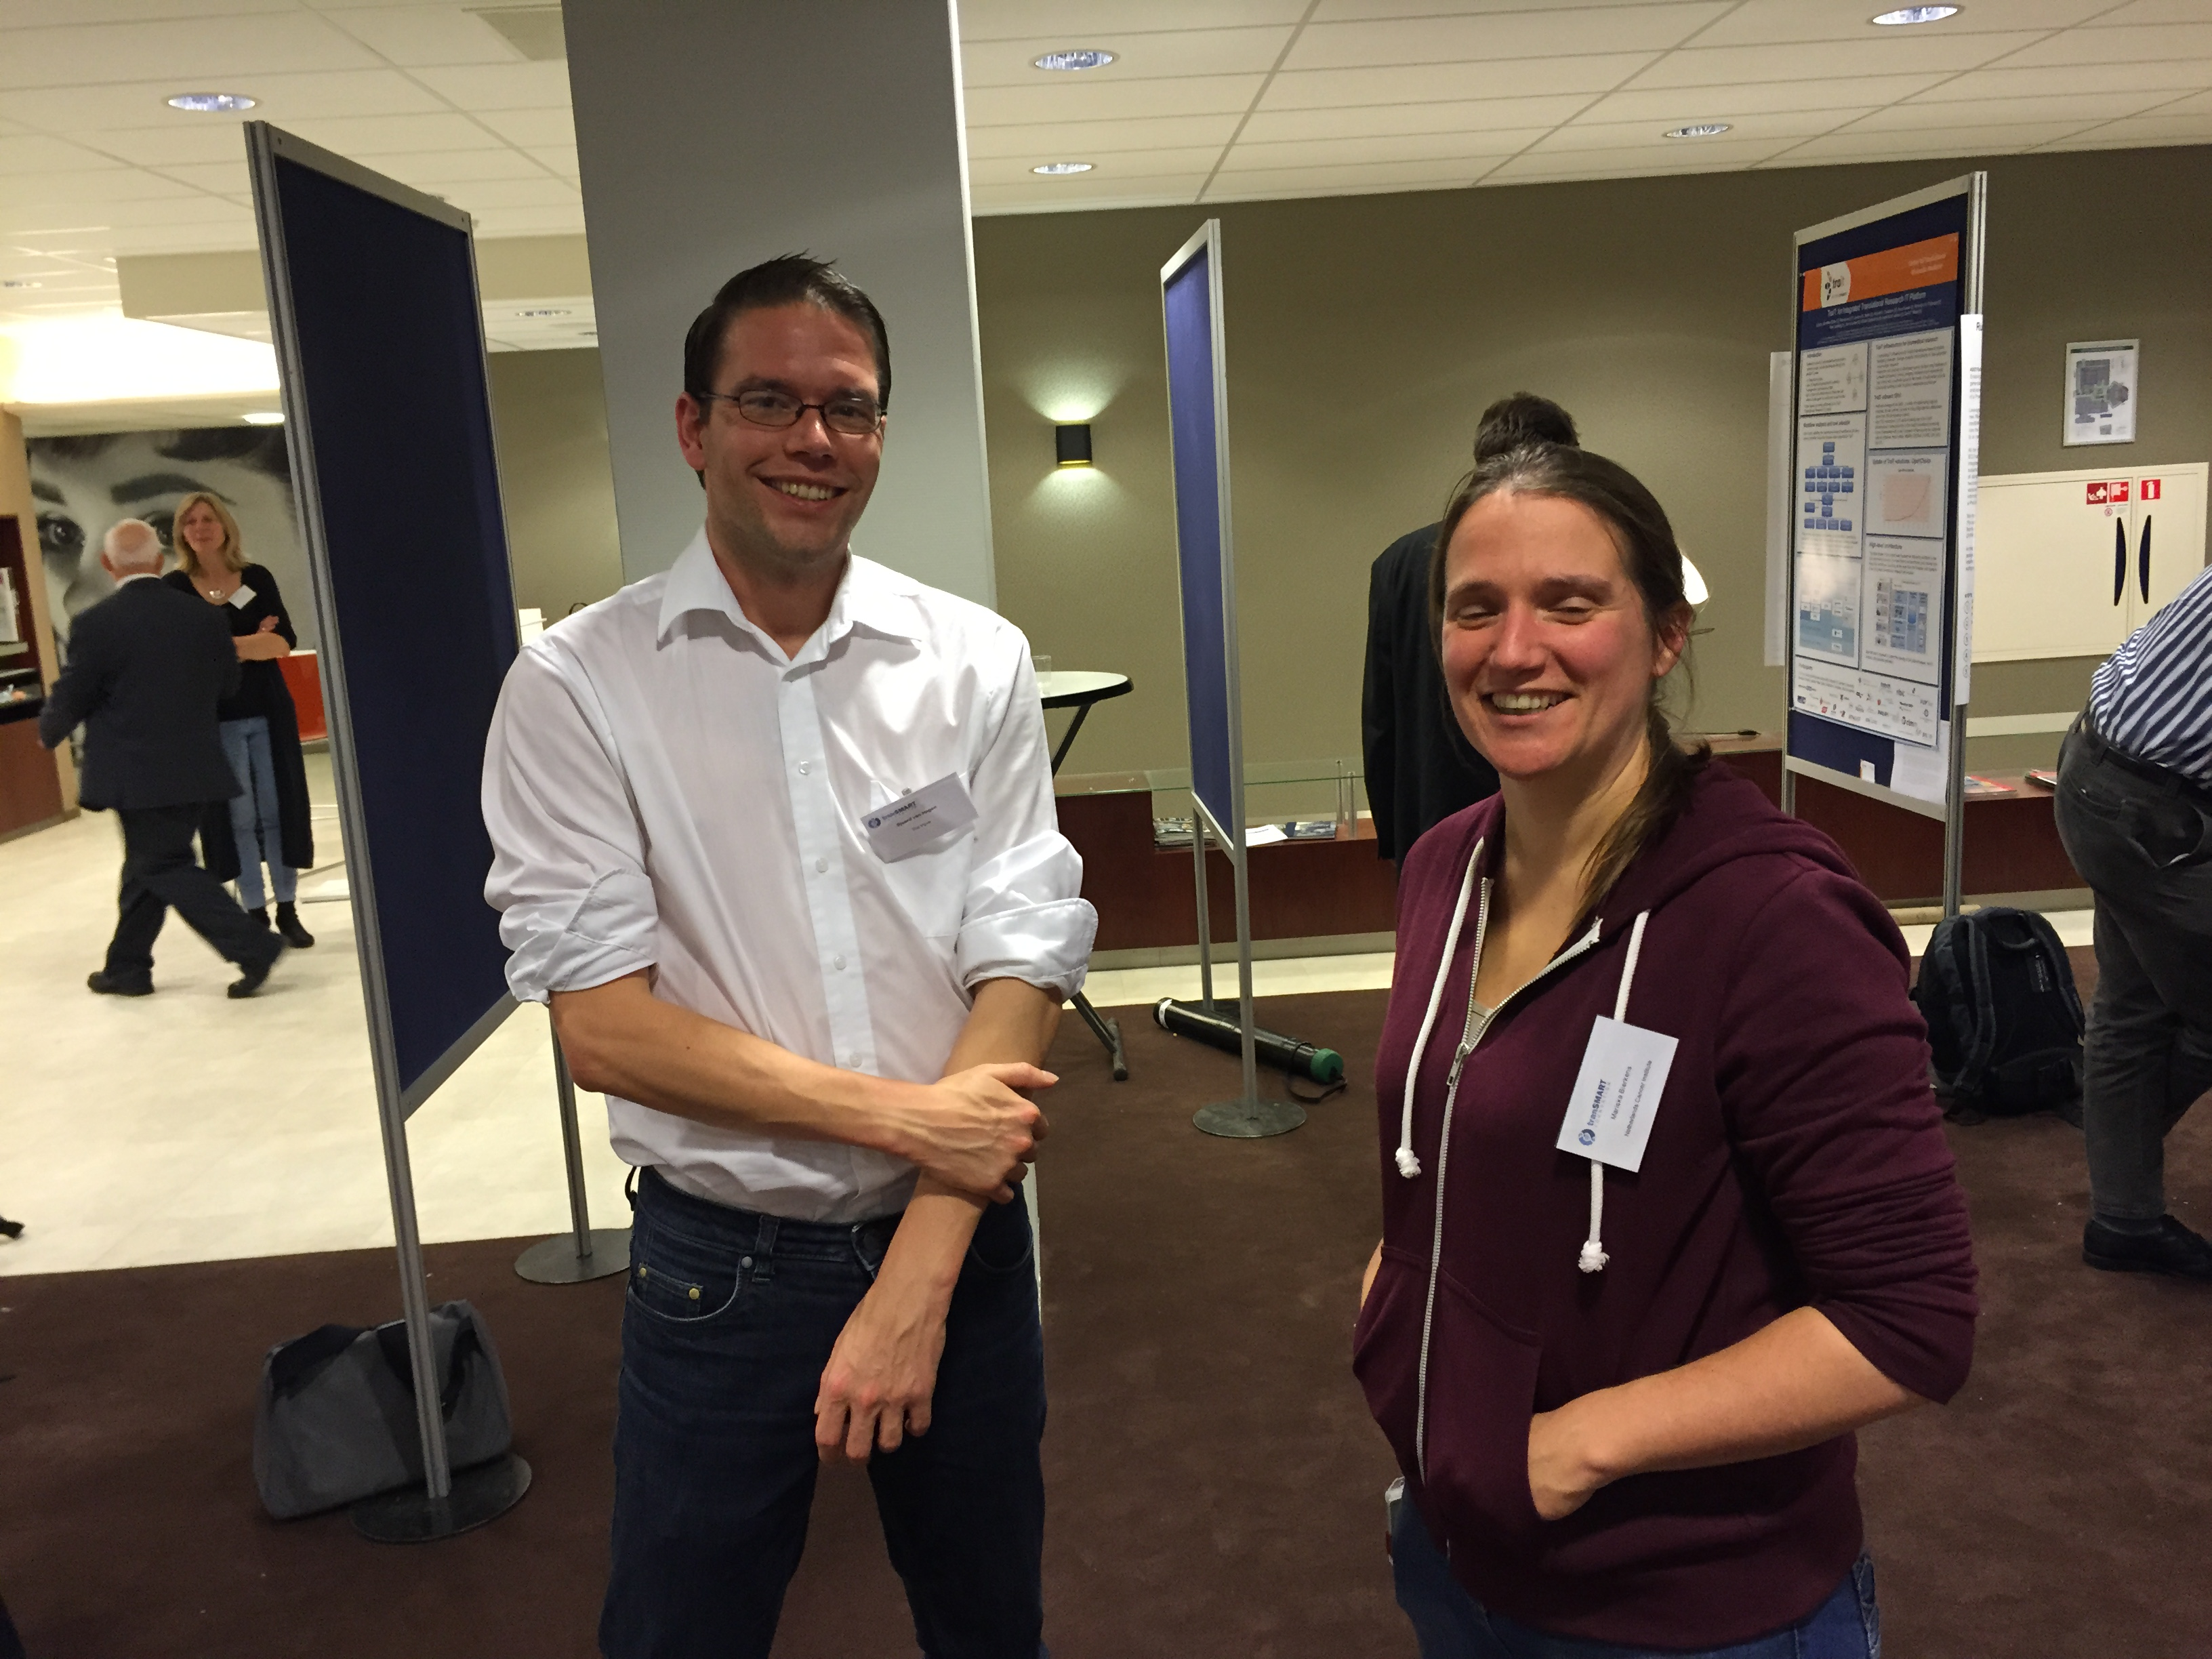 014: At the Poster Session 6